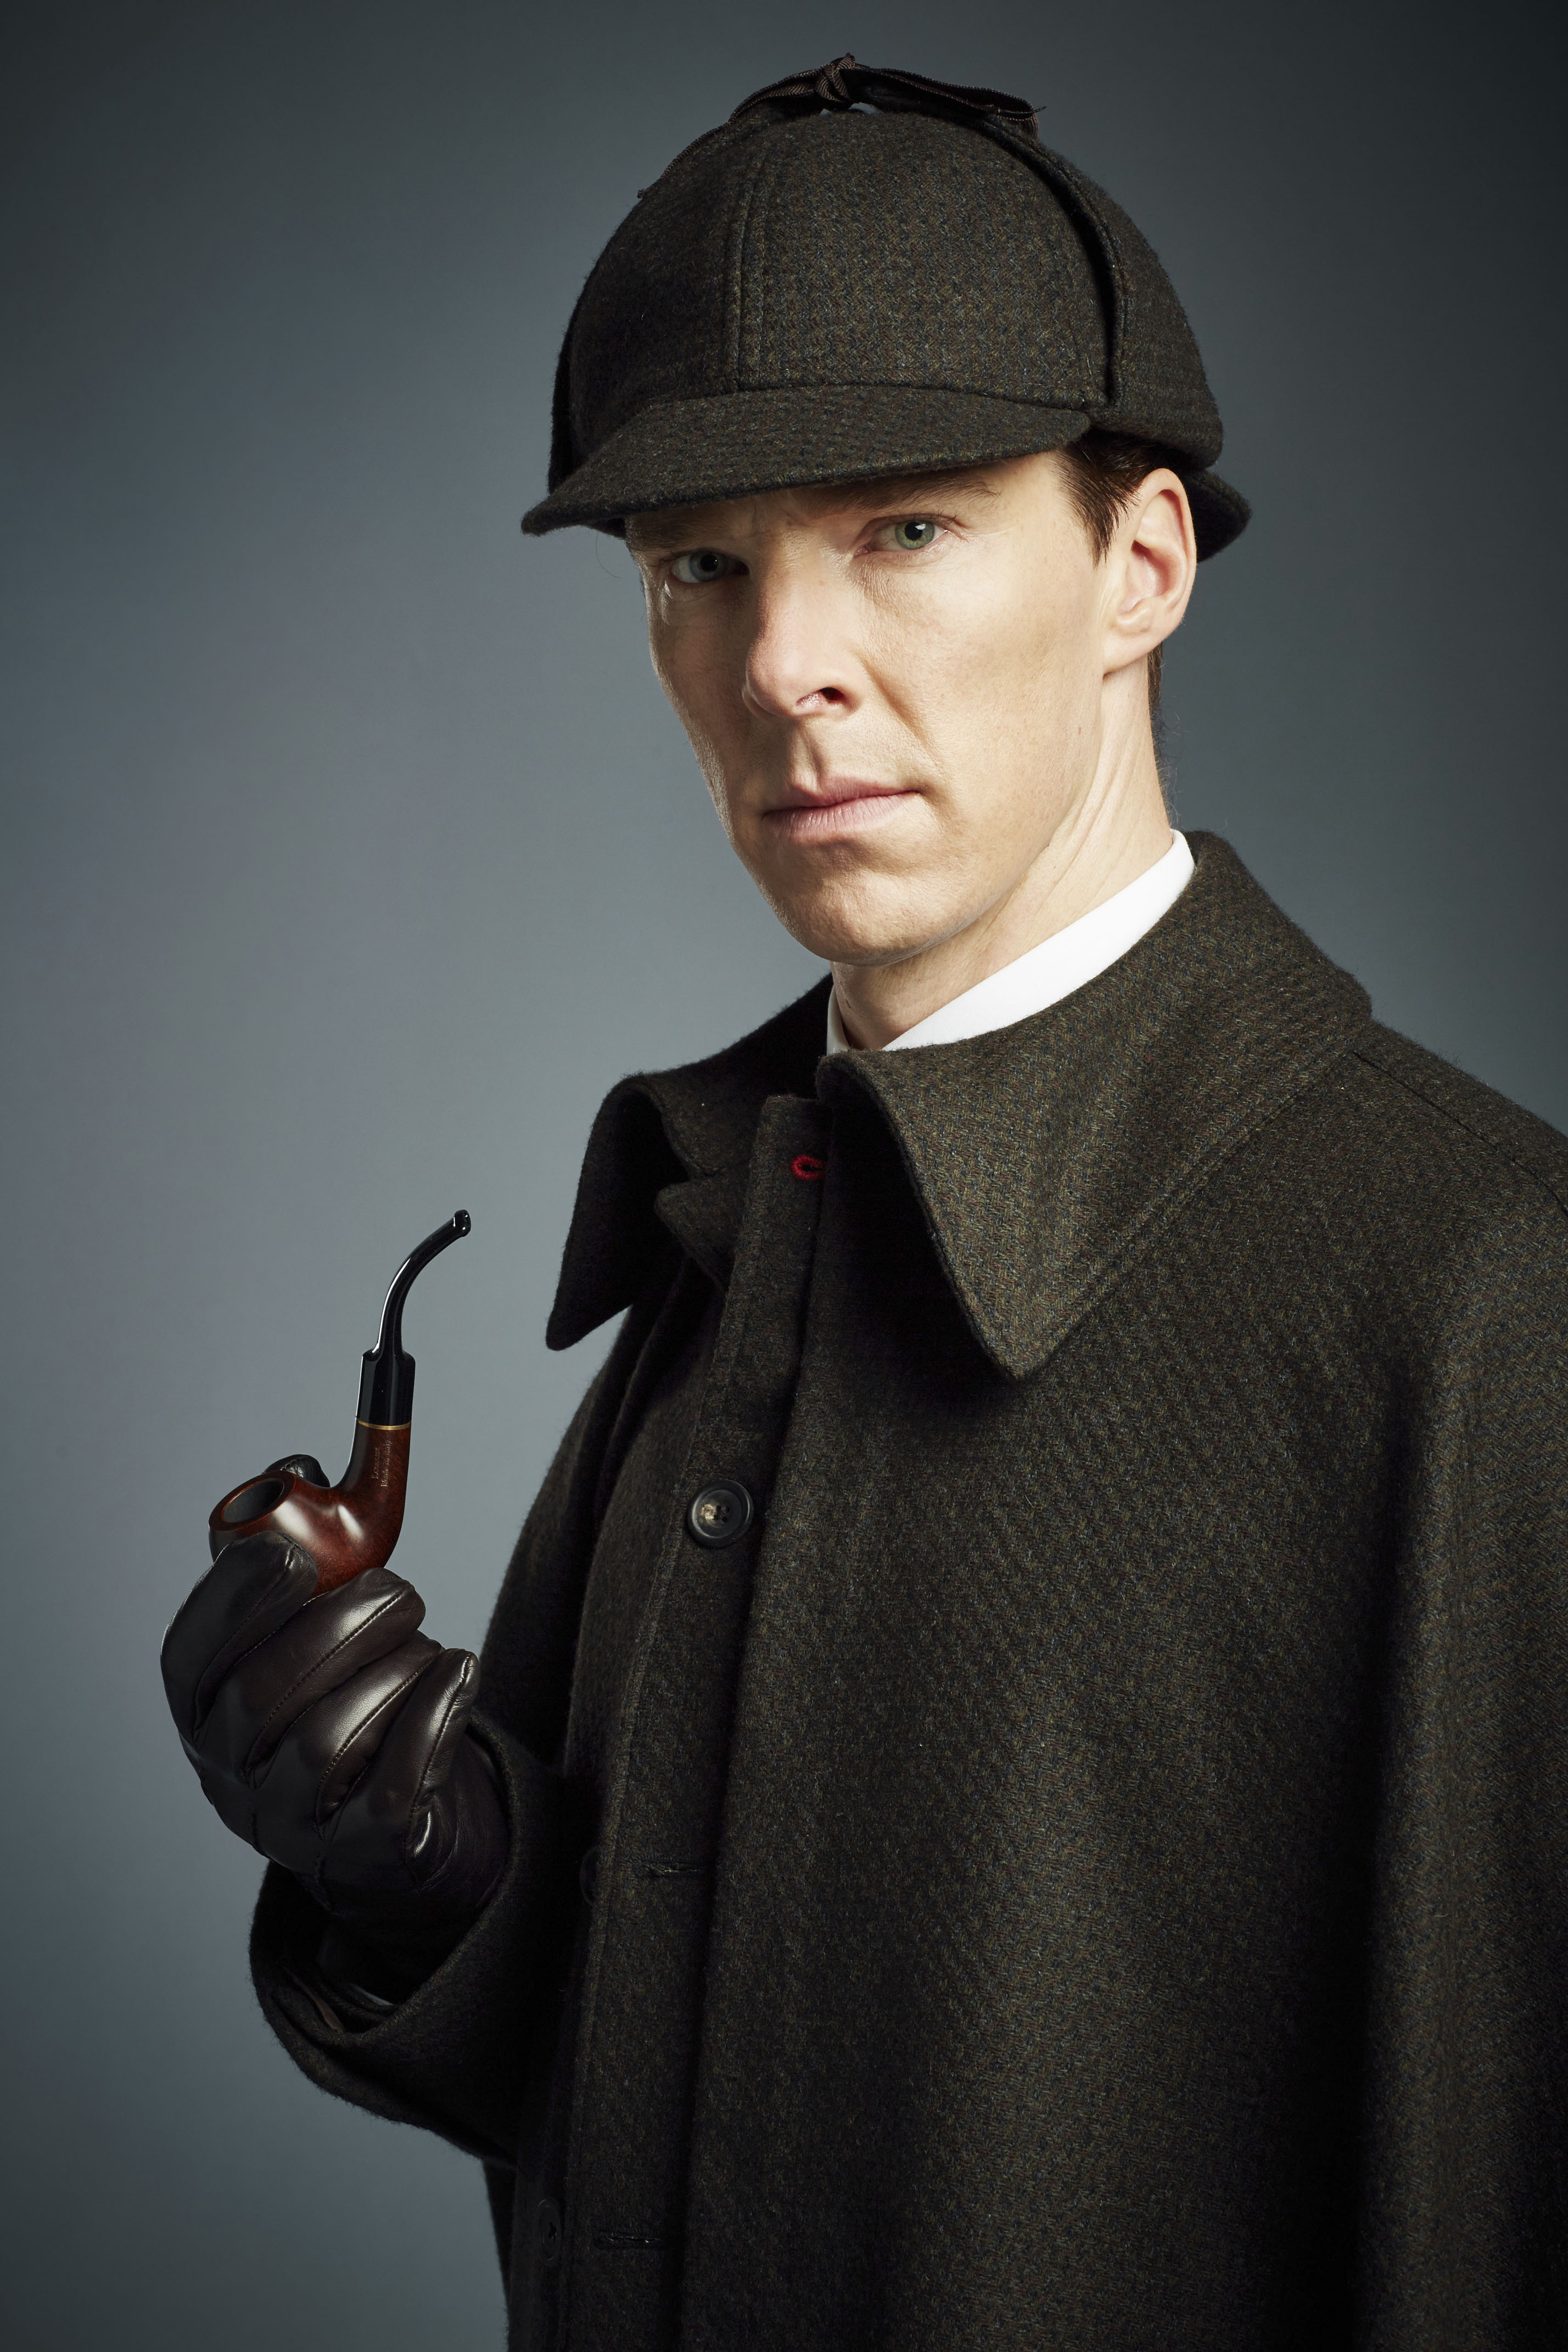 sherlock William sherlock scott holmes is the world's only consulting detective, a profession he himself created he lives in london at 221b baker street, is the brother between mycroft and eurus holmes.